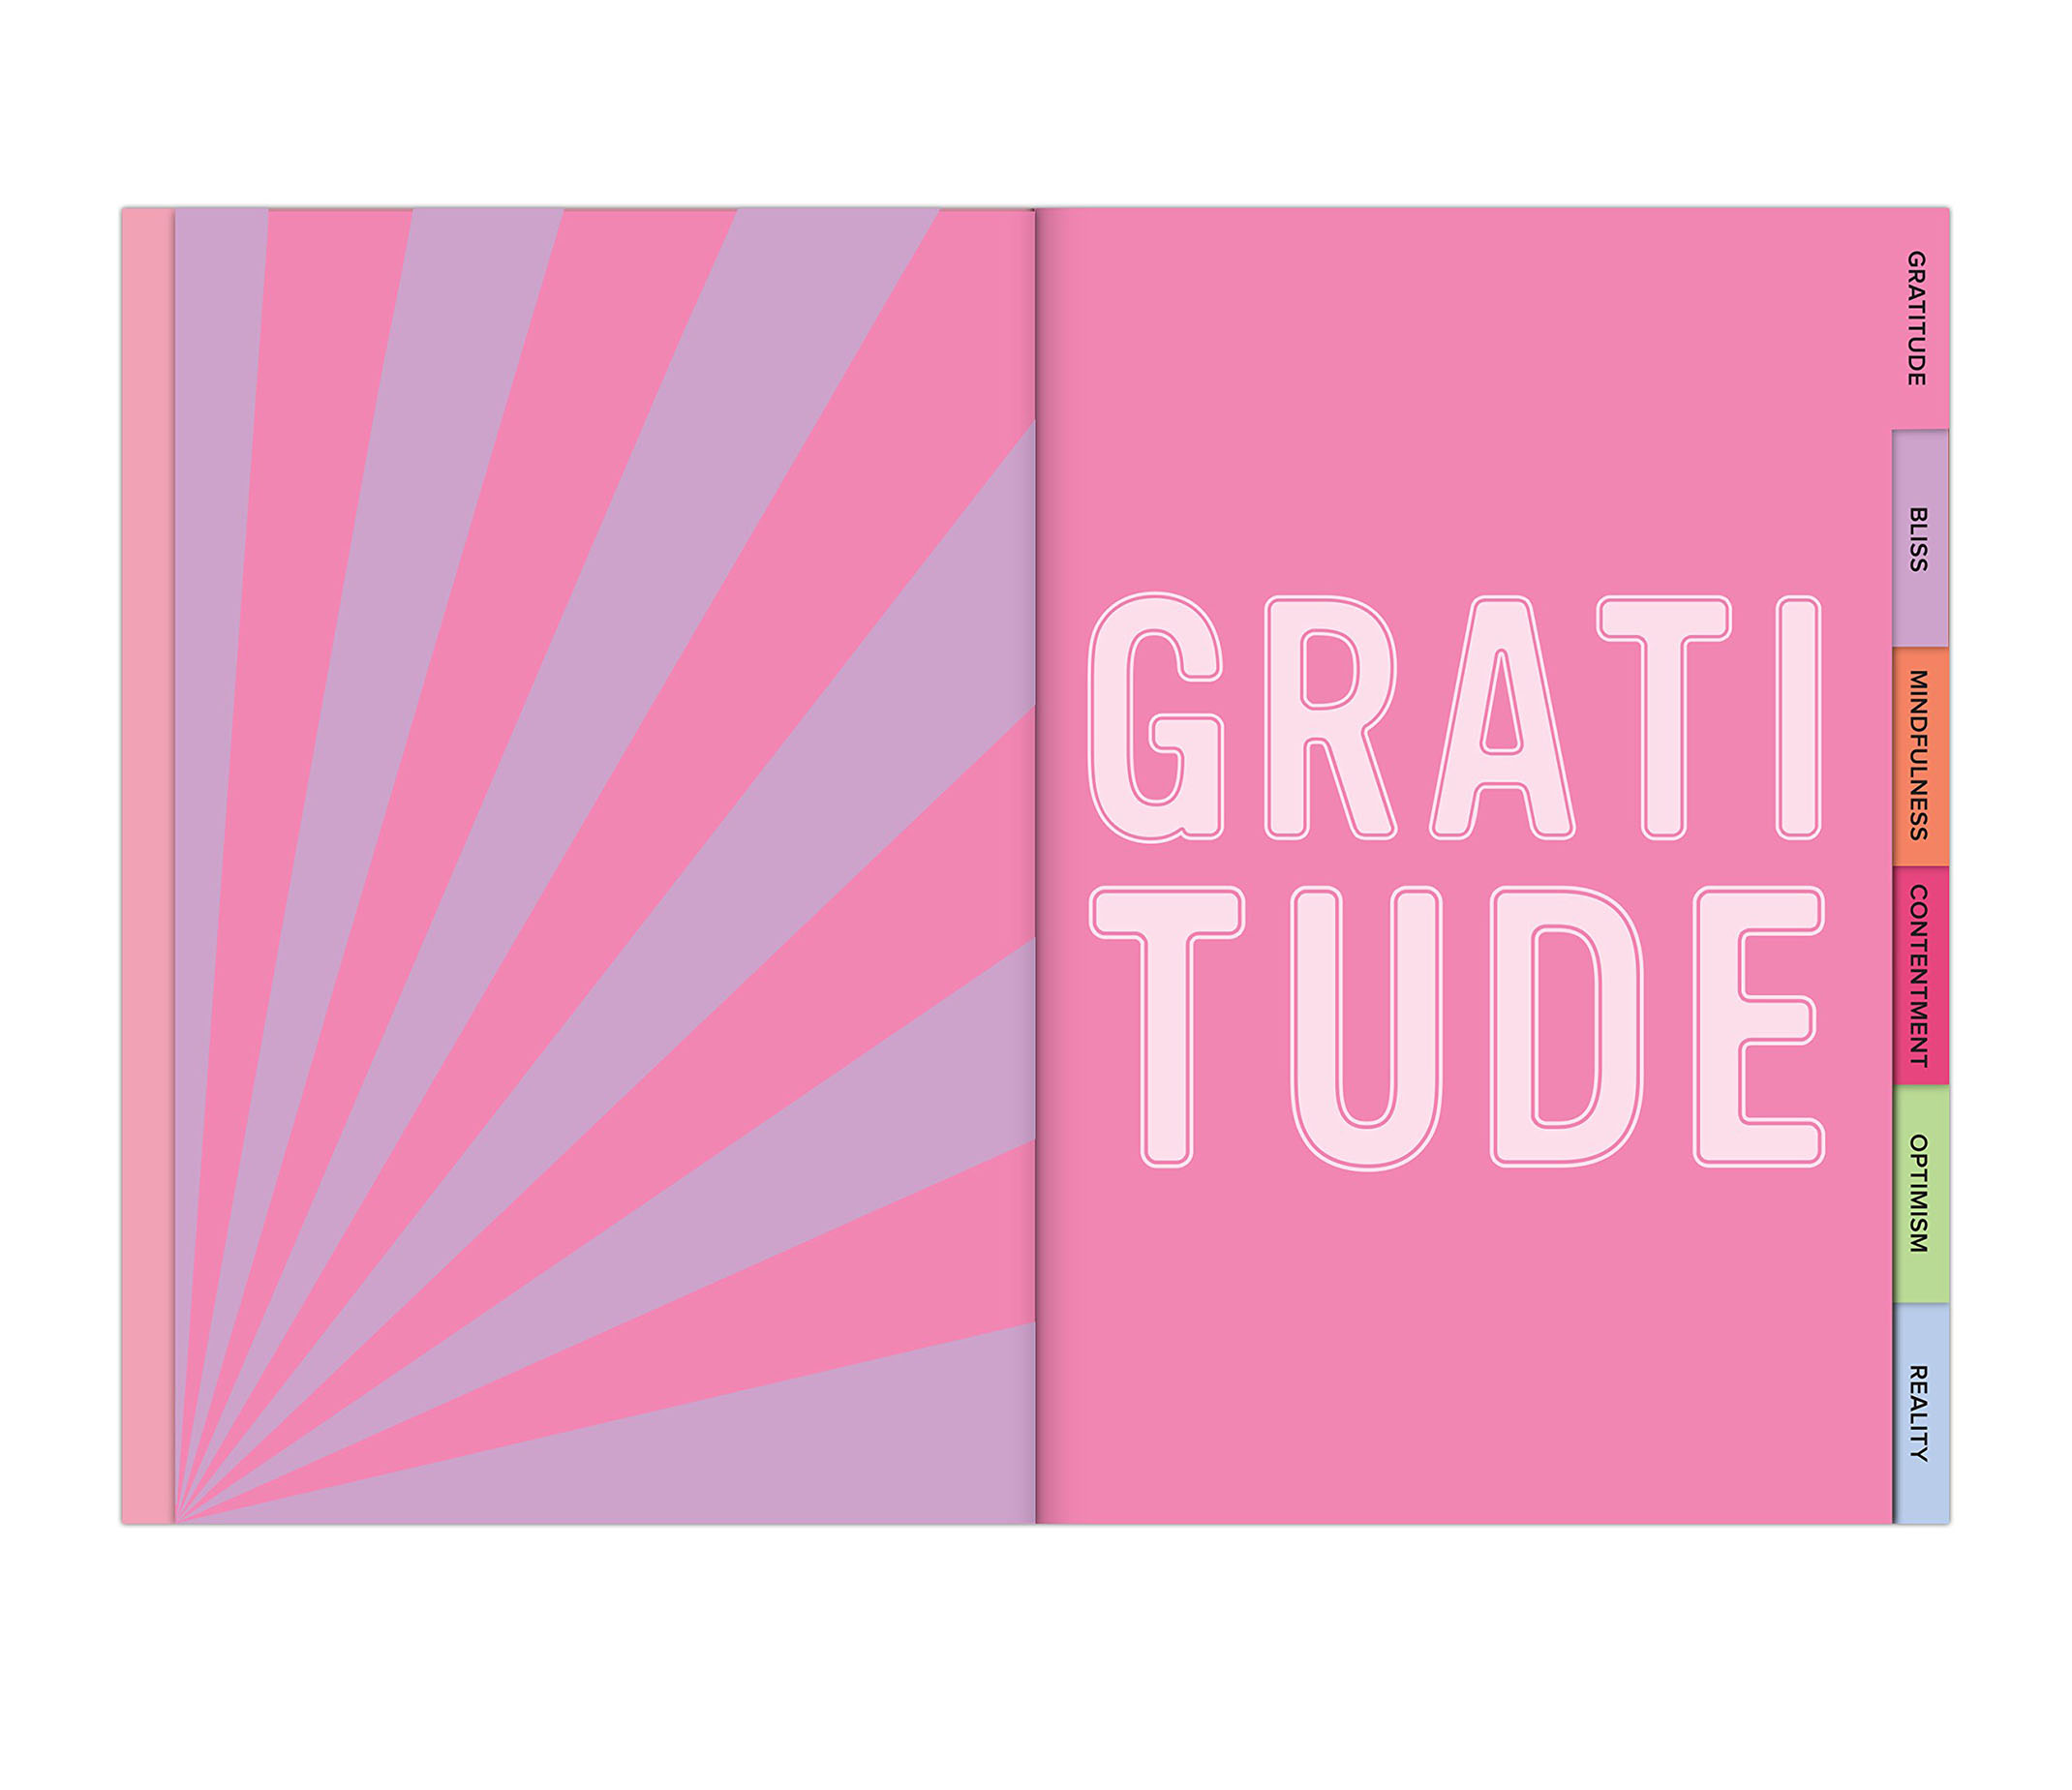 This Journal looks on the bright side spread view of a new section called gratitude.